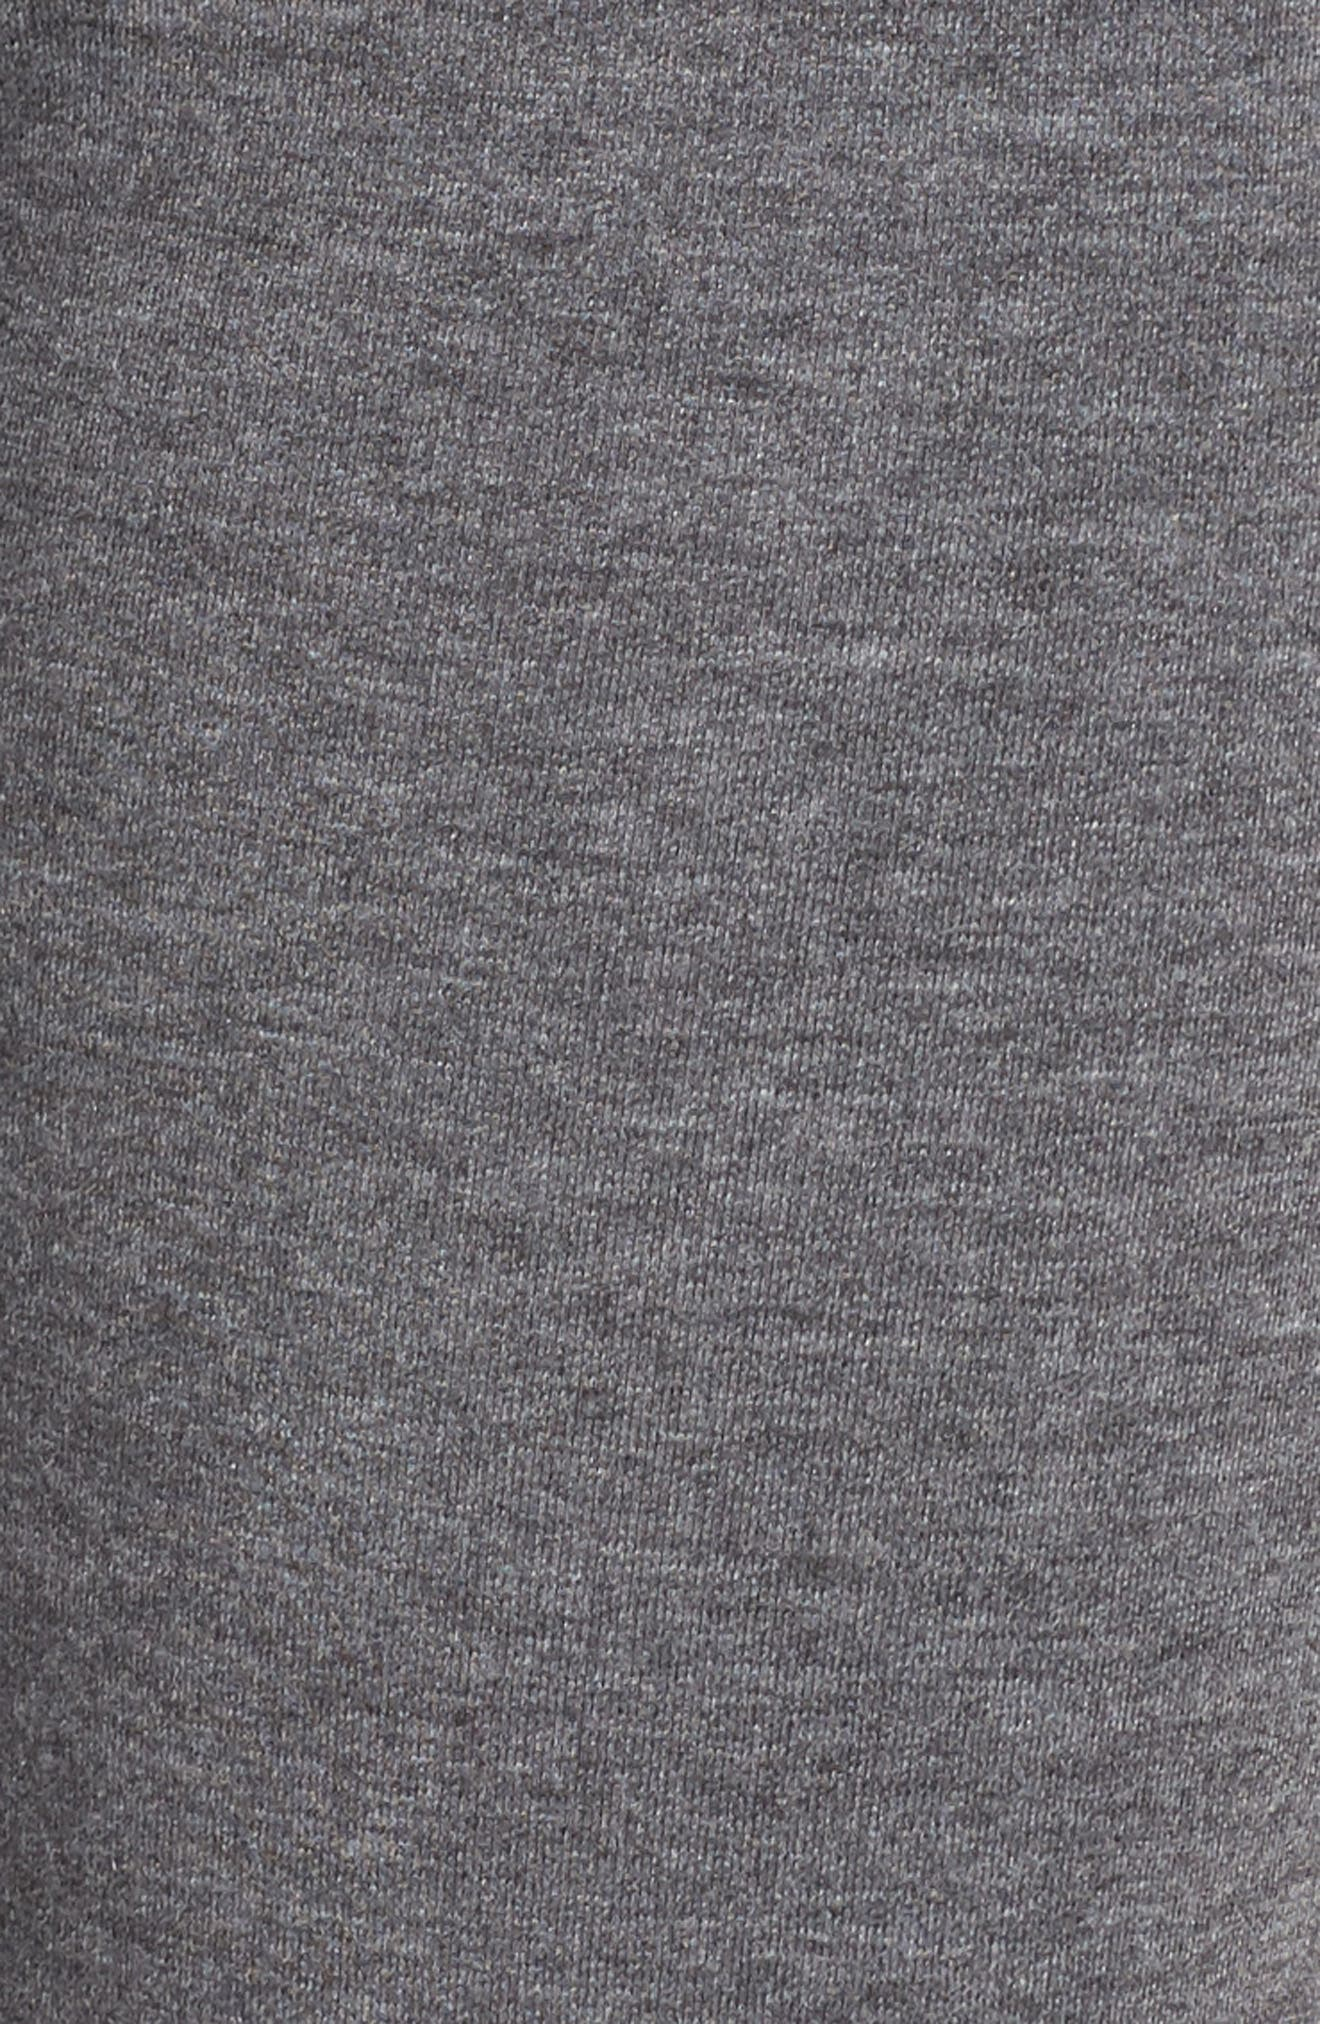 Revive Pants,                             Alternate thumbnail 6, color,                             GREY DARK HEATHER